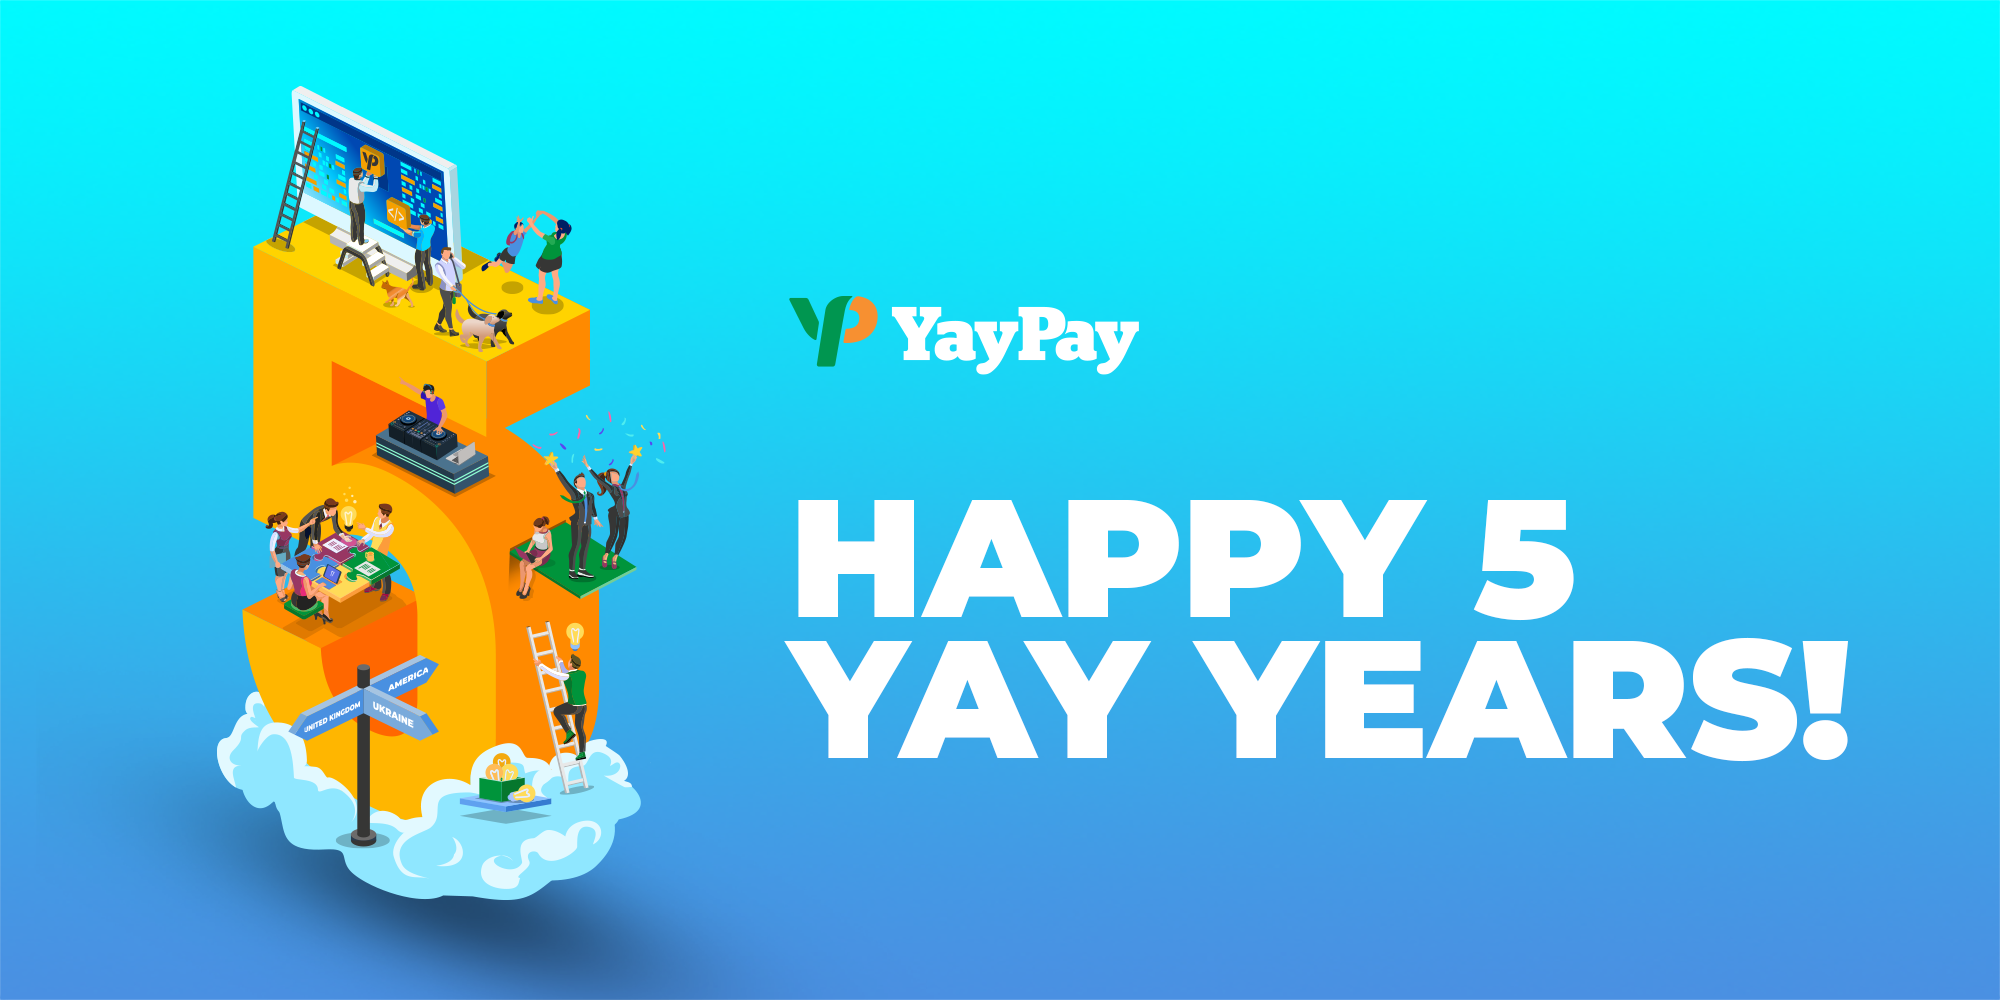 Happy 5th Anniversary YayPay!